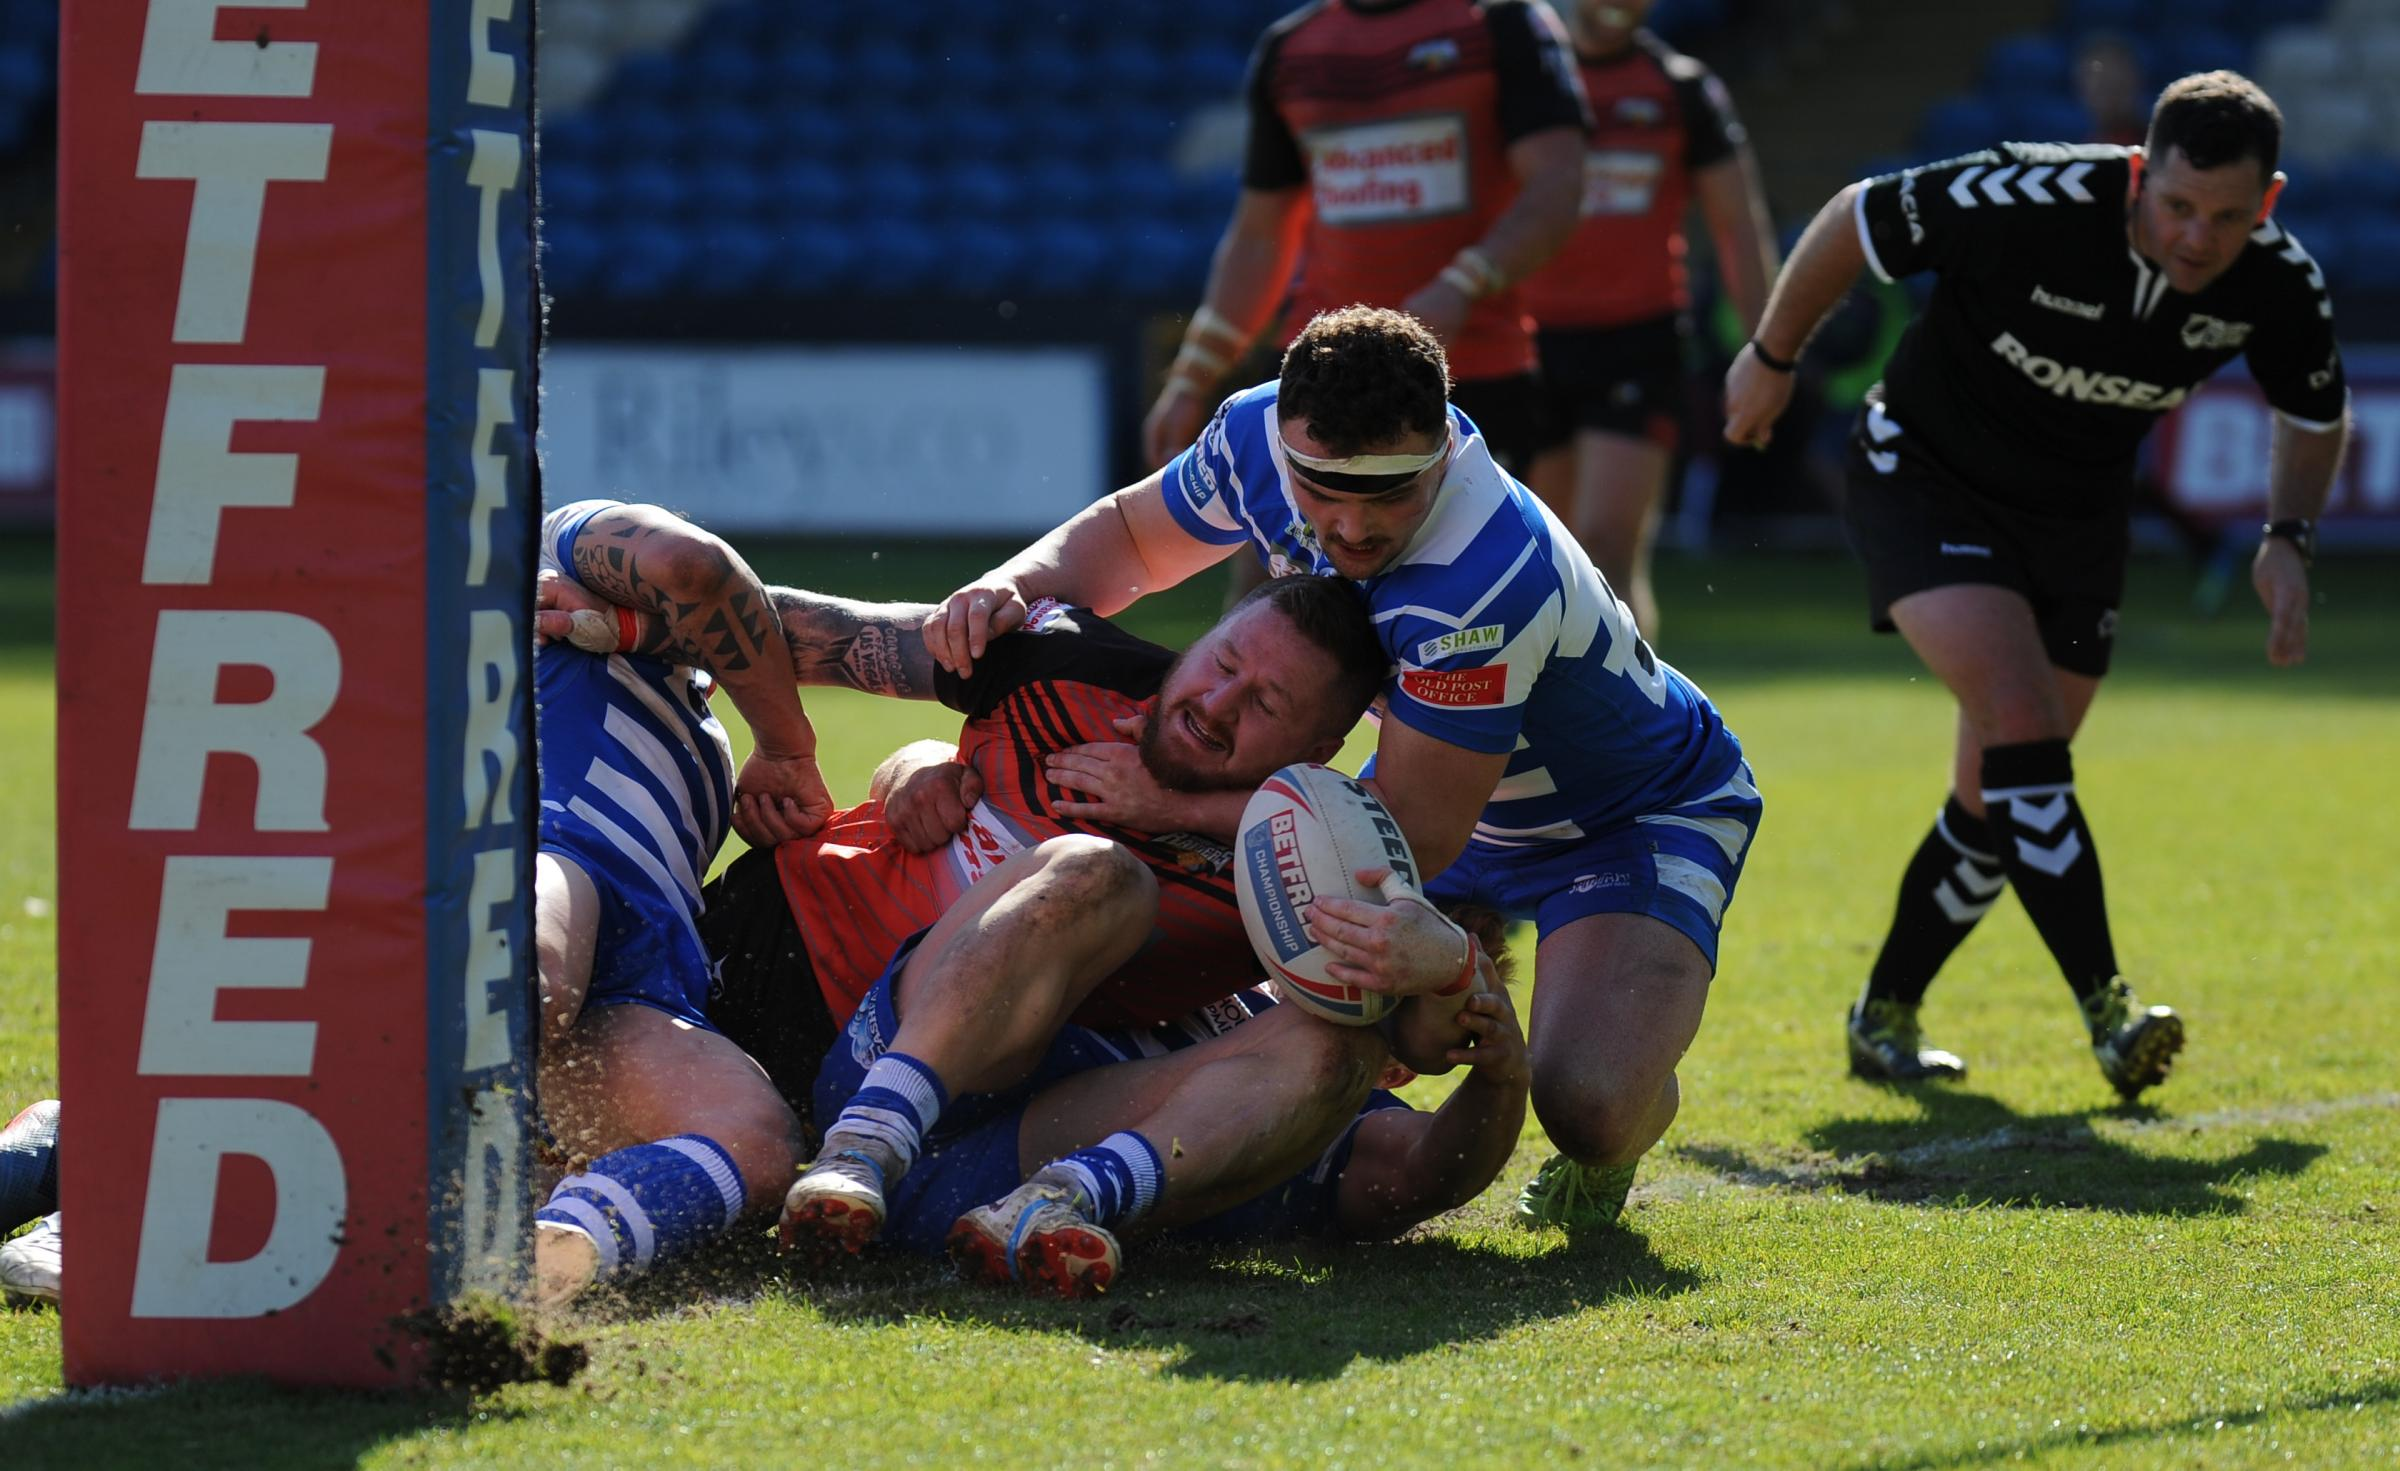 FALLING SHORT: Dan Toal can't quite get the ball down during Barrow Raiders' defeat at Halifax                                   Picture: Richard Land